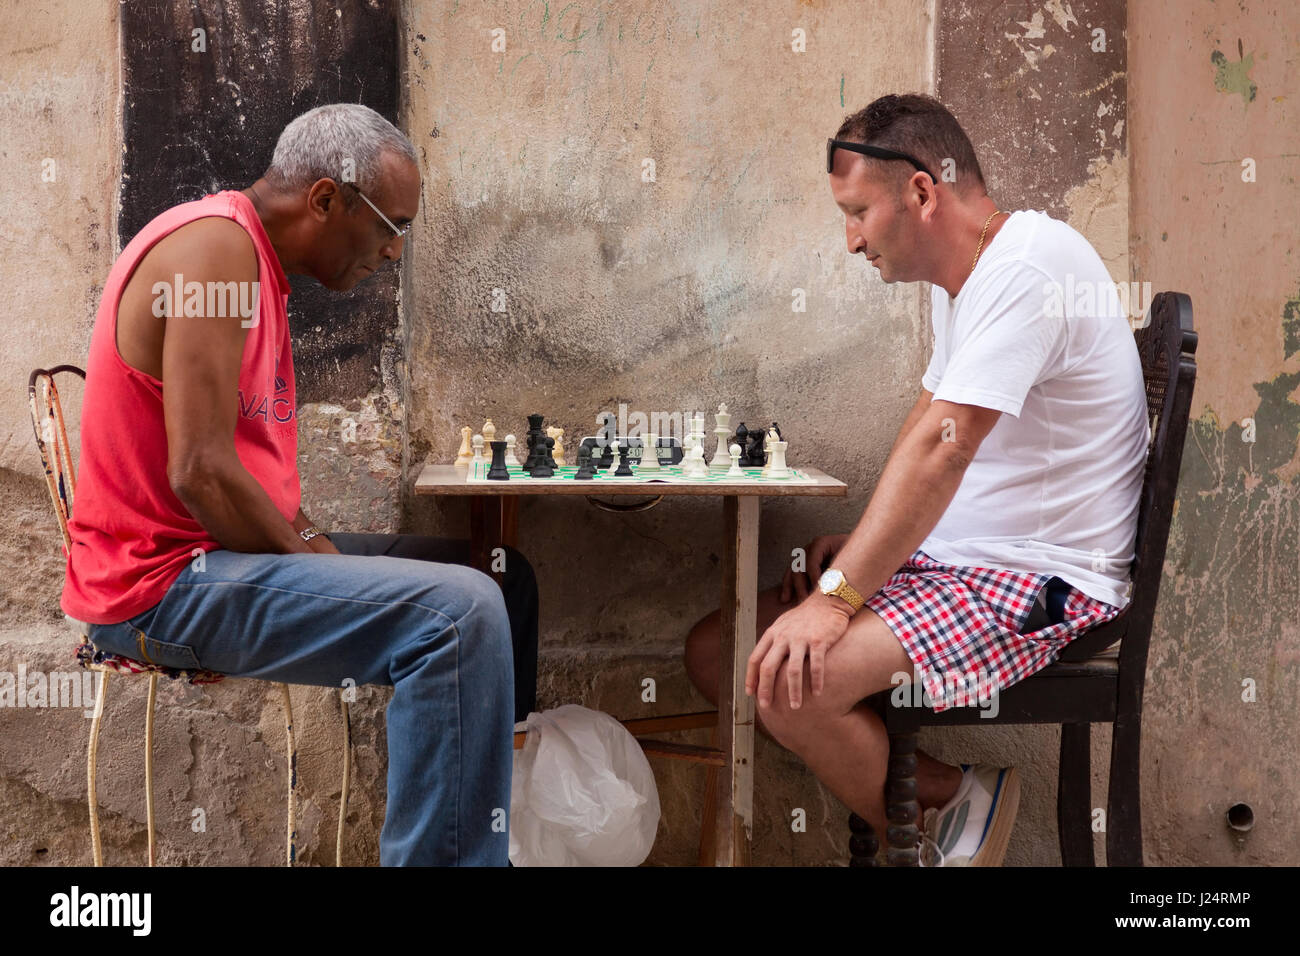 Two Cuban men playing chess in the street in Havana, Cuba. - Stock Image